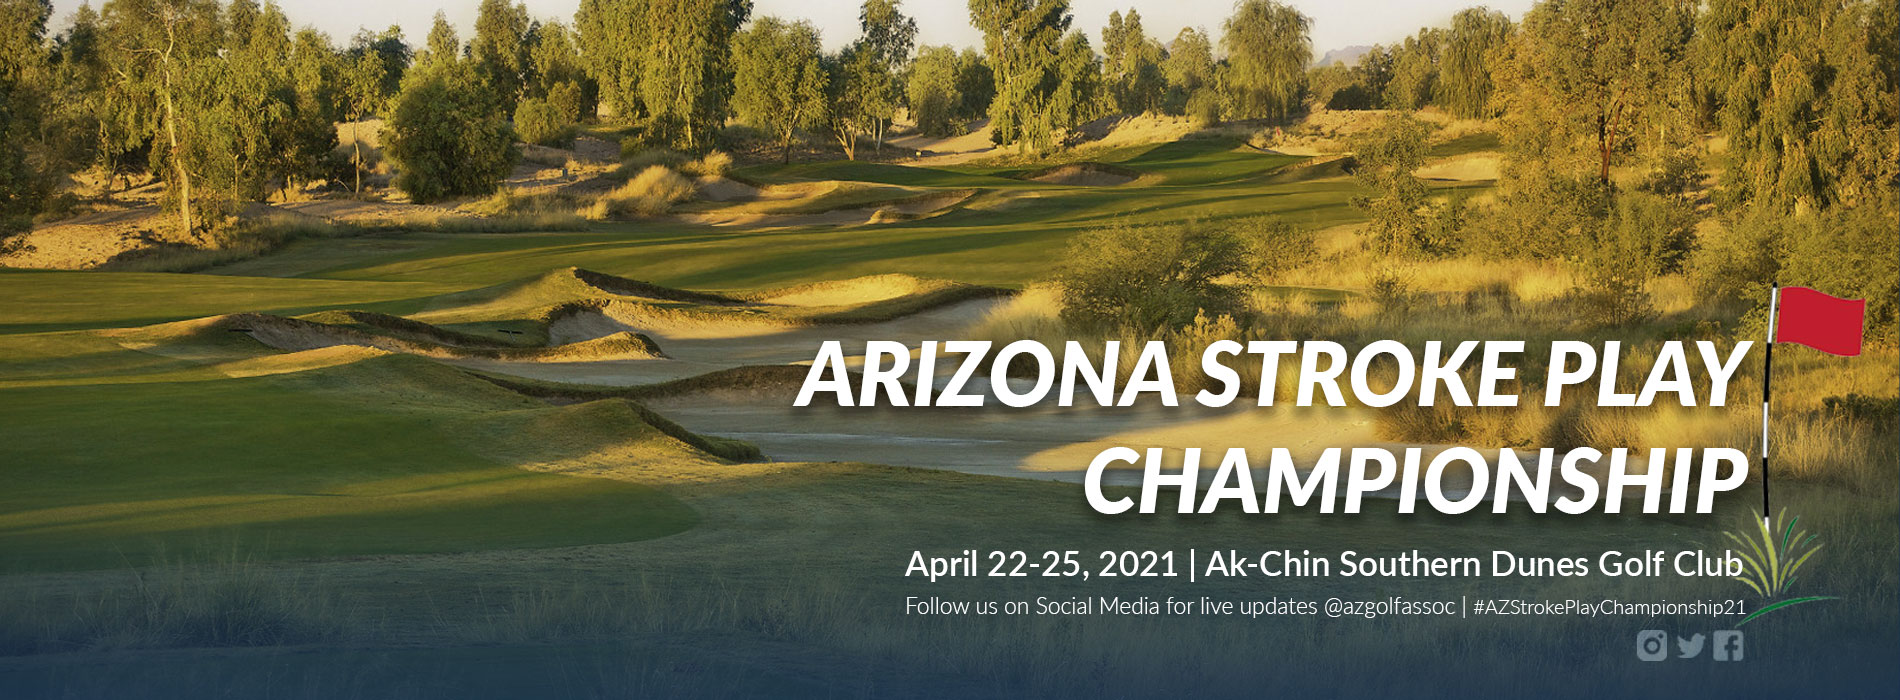 Displays a landscape of a hole on the Ak-Chin Southern Dunes course and text saying 2021 Arizona Stroke Play Championship, follow us on social media for live updates.